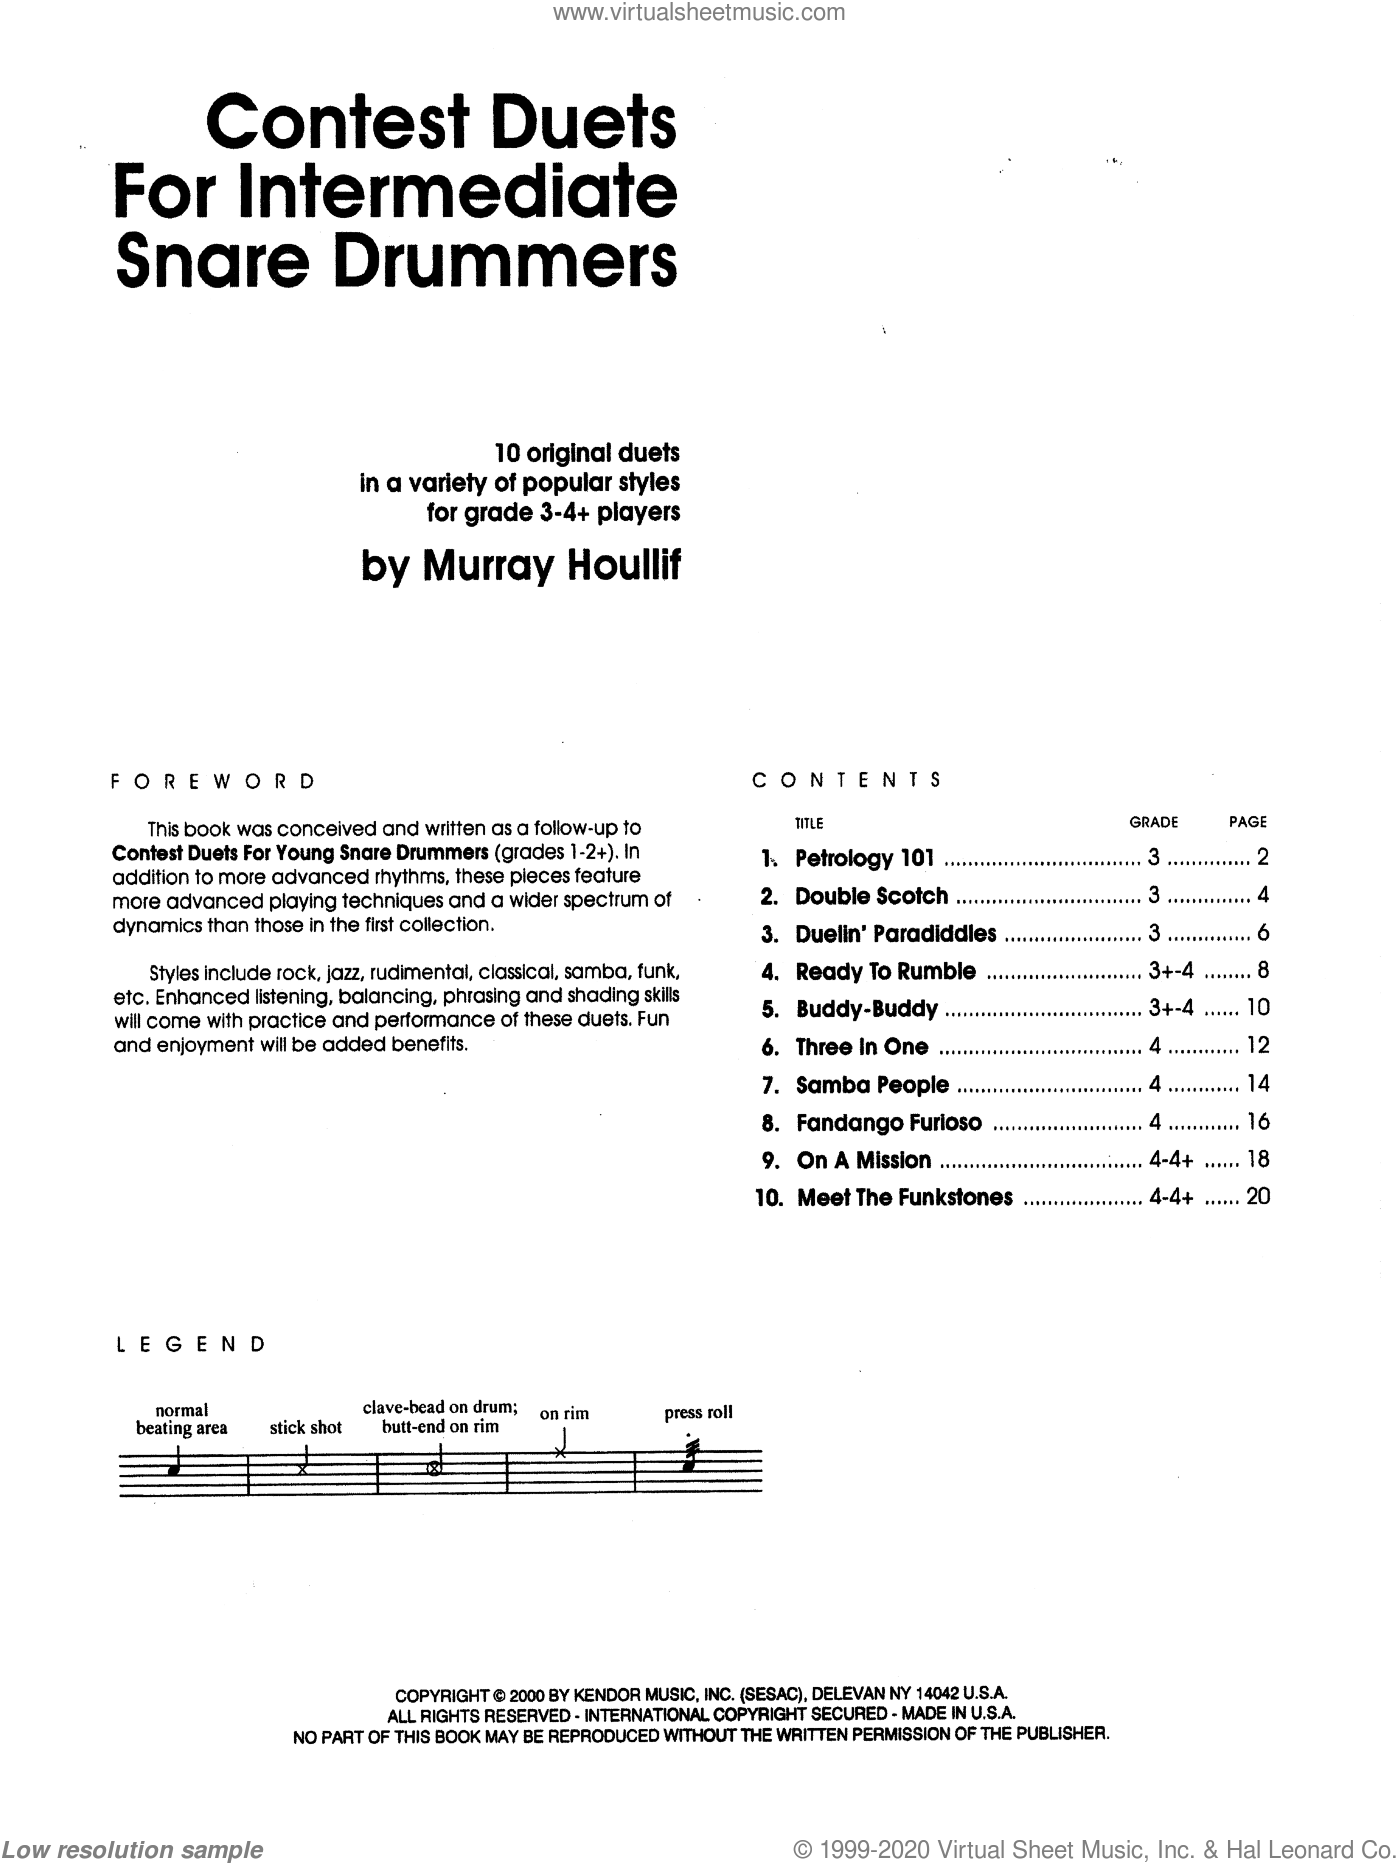 Contest Duets For The Intermediate Snare Drummers sheet music for percussions by Houllif. Score Image Preview.